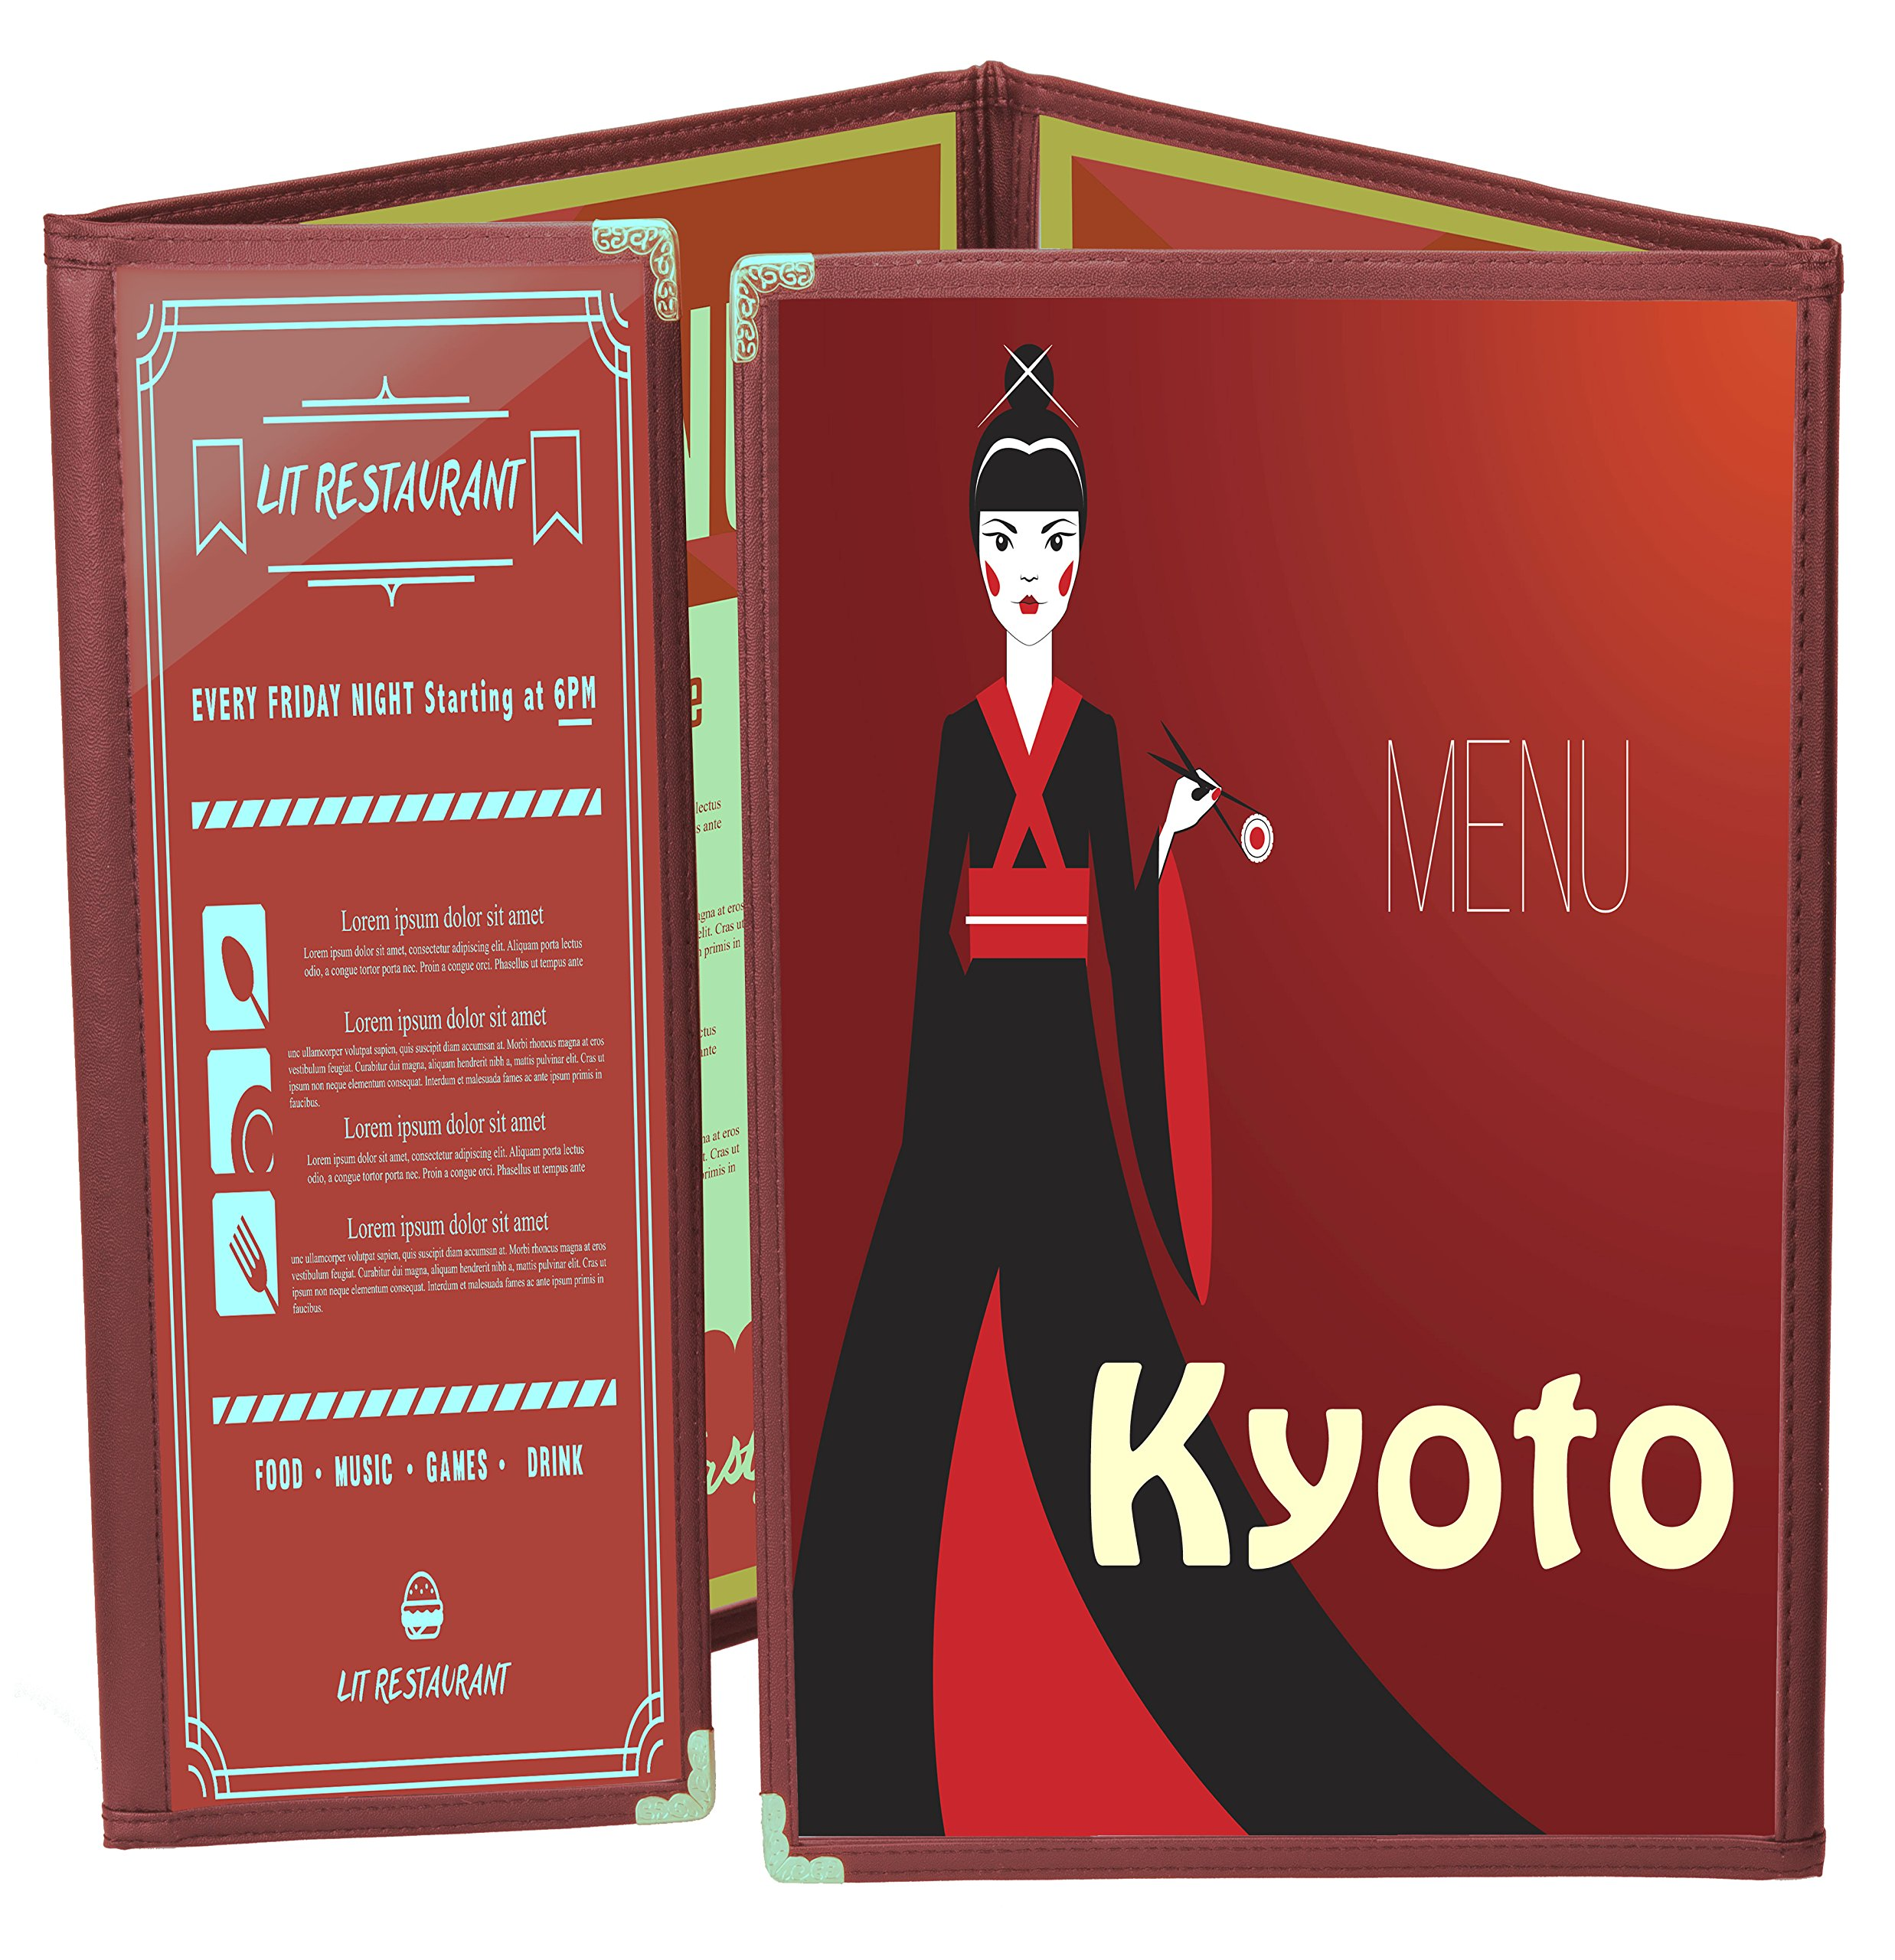 25 BETTER QUALITY Menu Covers #P130T BURGUNDY TRIPLE PANEL FOLDOUT + ONE-HALF - 8-VIEW - 8.25 x 11 & 4.25 X 11 DOUBLE-STITCH Leatherette Edge-Gold corners. SEE MORE: Type MenuCoverMan in Amazon search